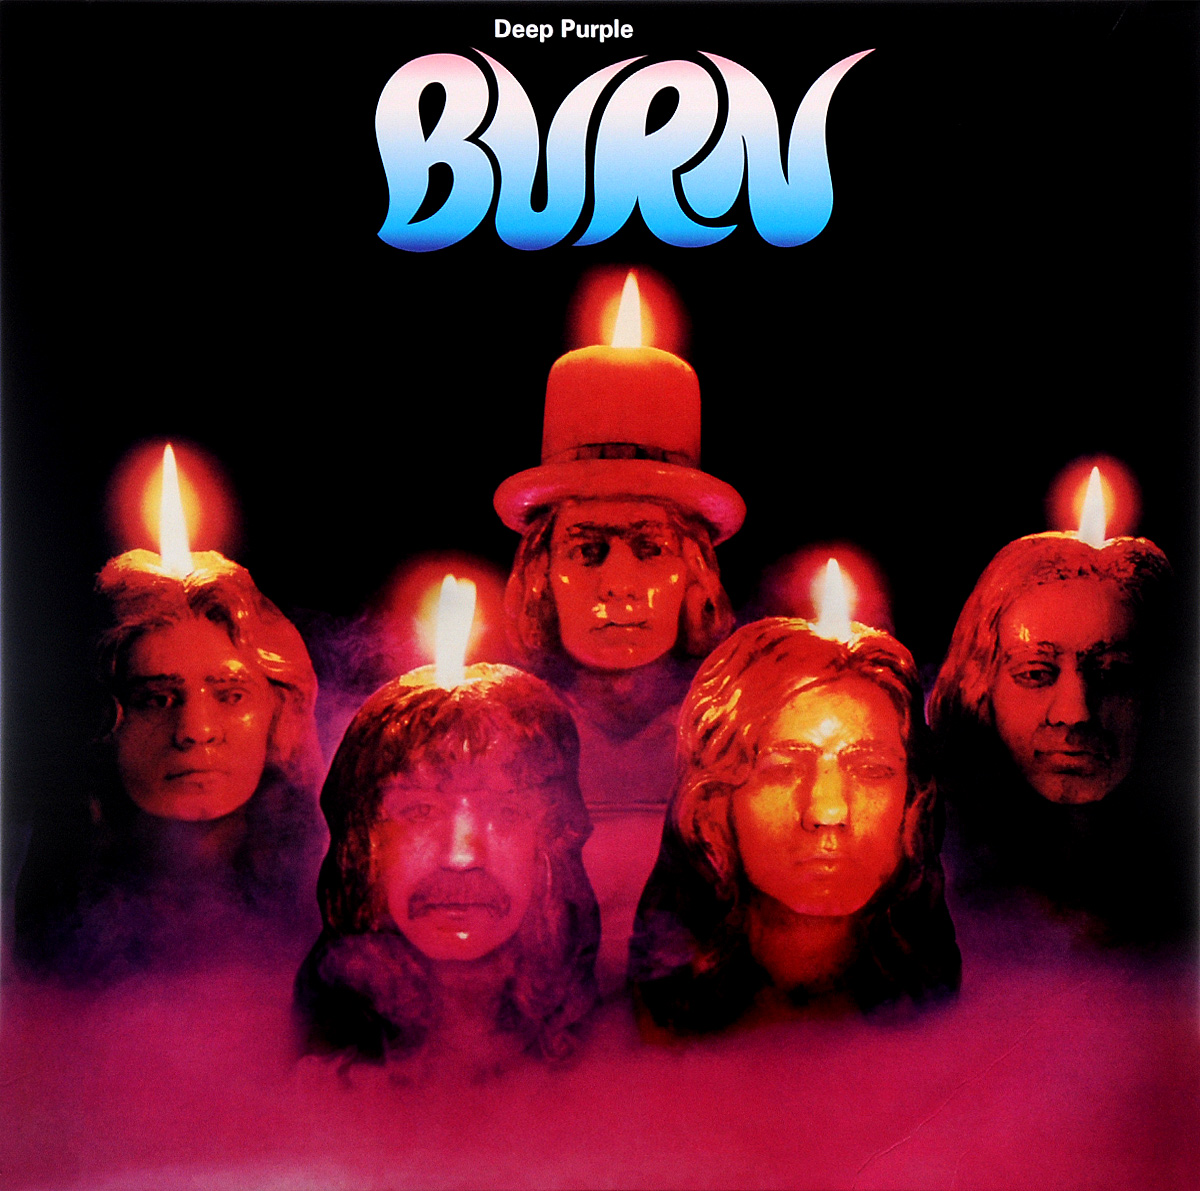 """Deep Purple"" Deep Purple. Burn (LP)"